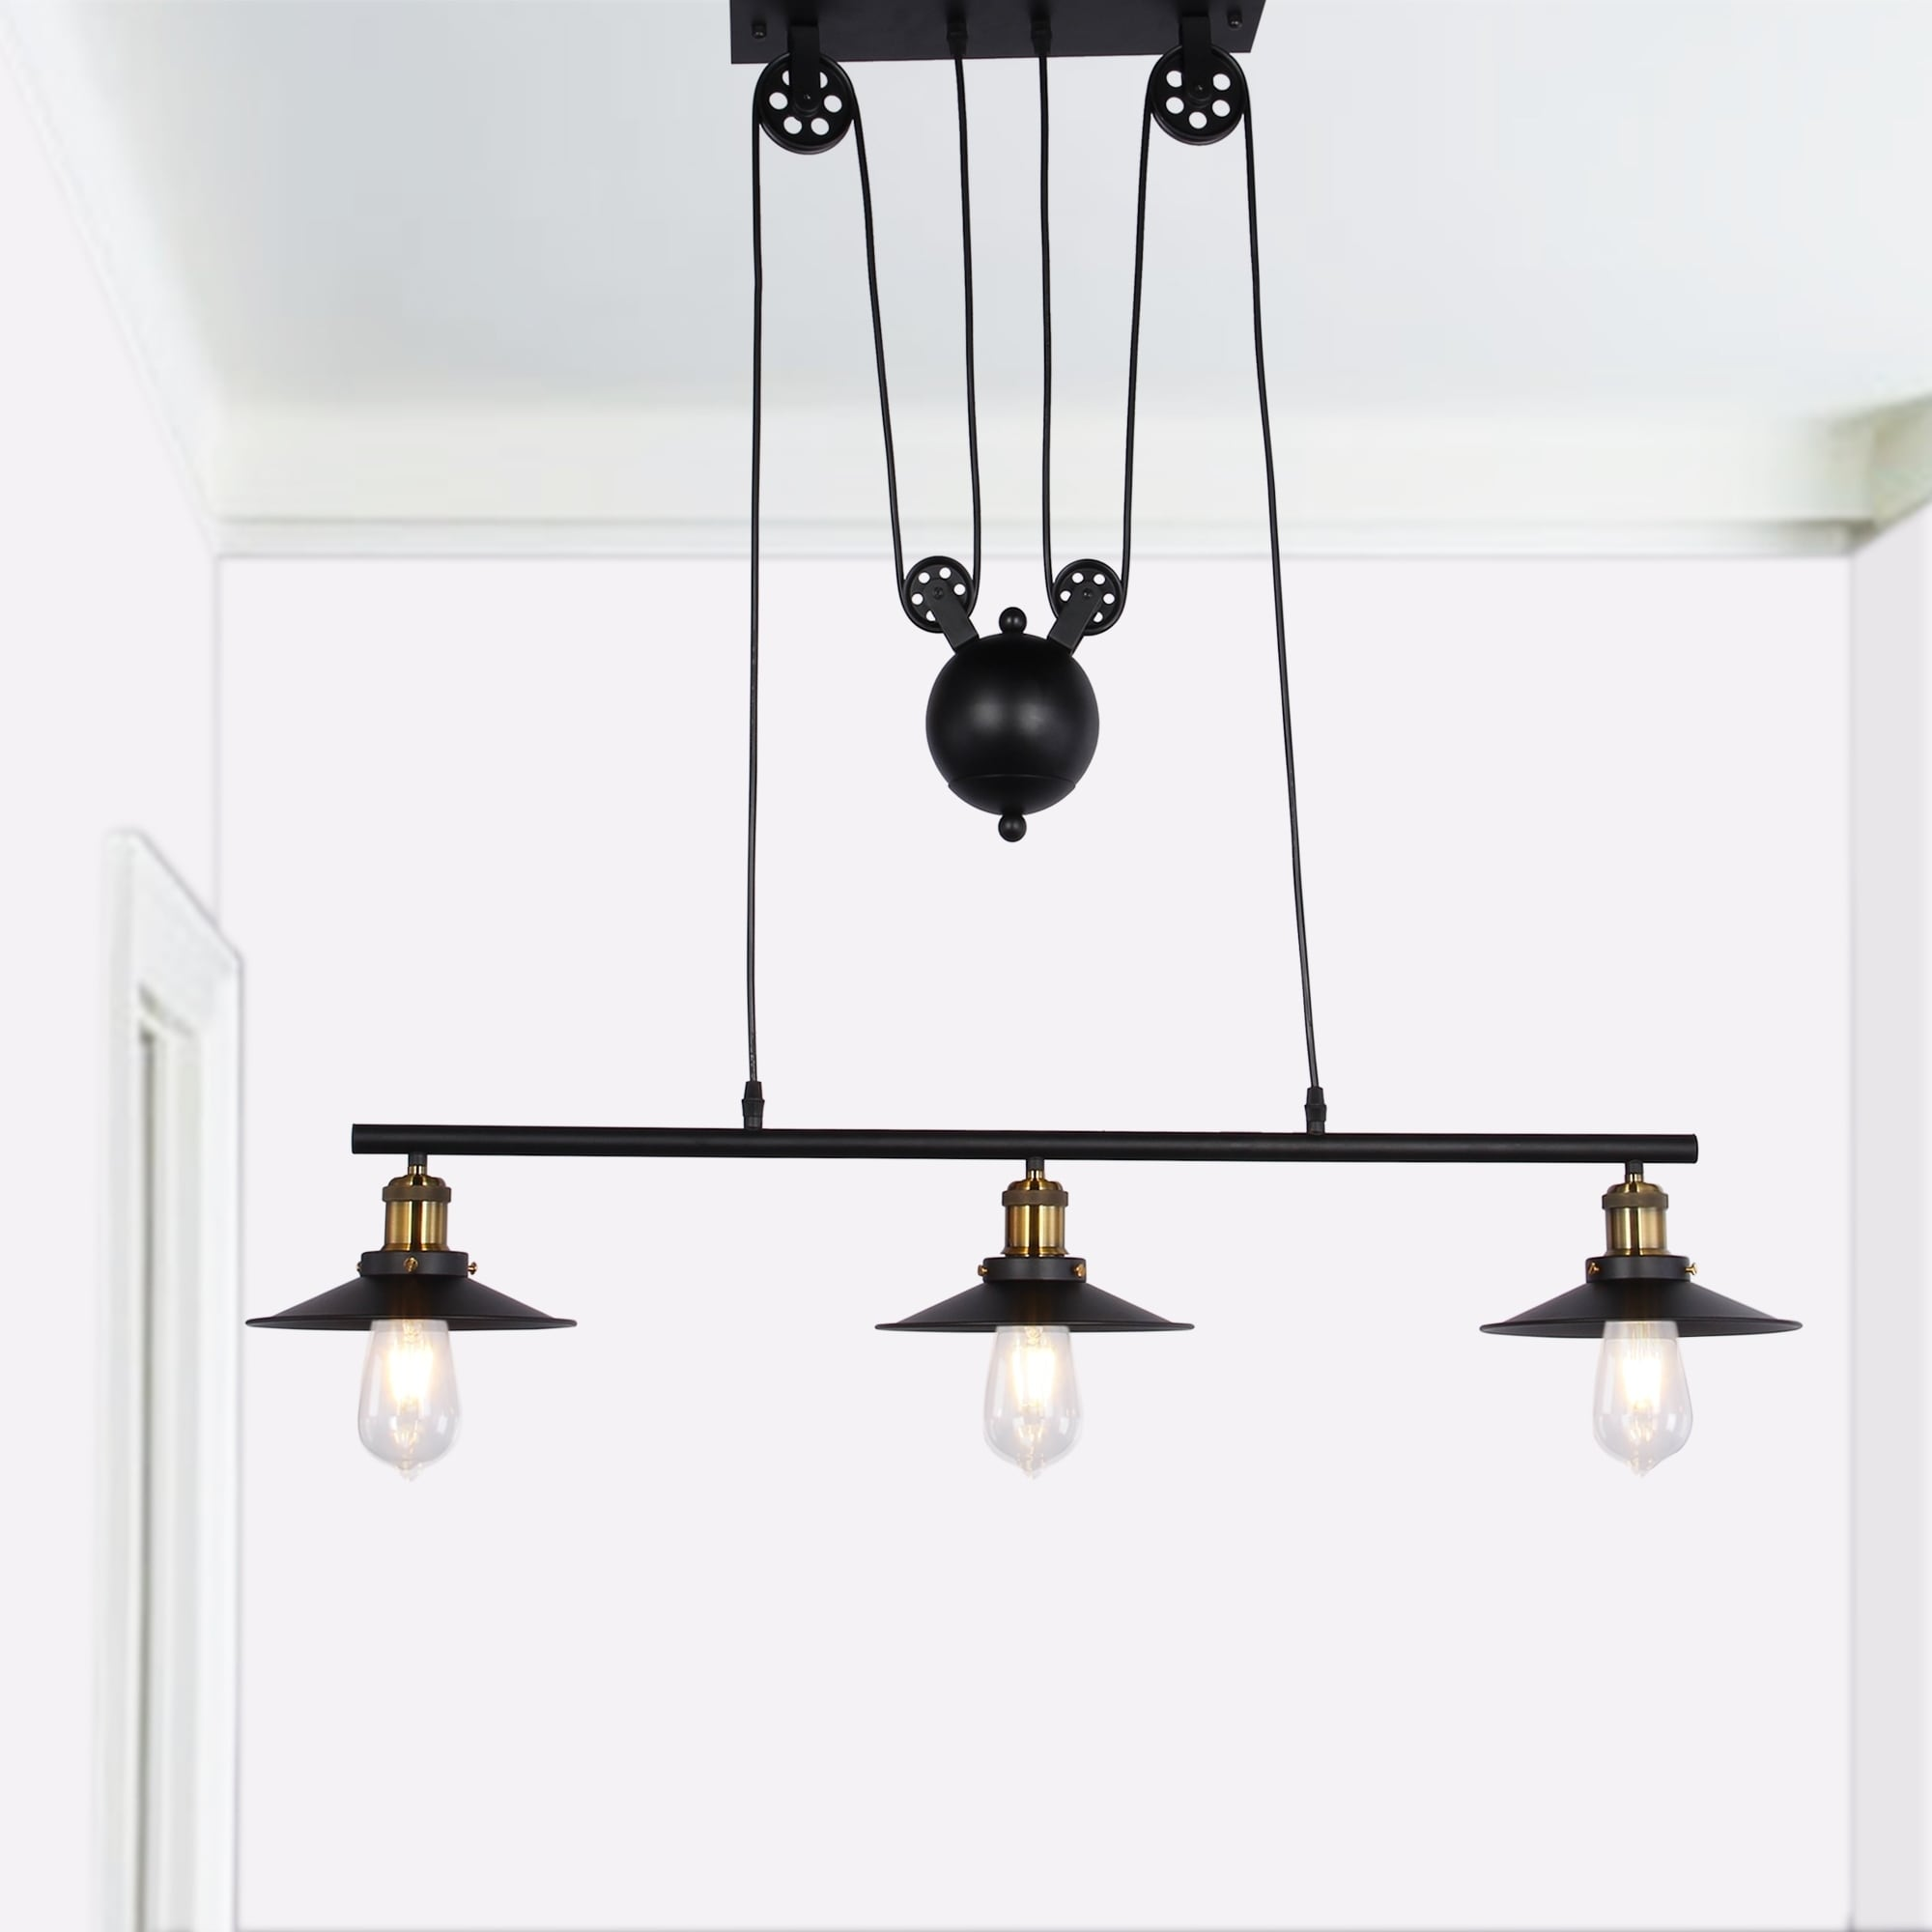 Shop darleen 3 light black 42 inch chandelier includes edison bulbs shop darleen 3 light black 42 inch chandelier includes edison bulbs free shipping today overstock 19792224 aloadofball